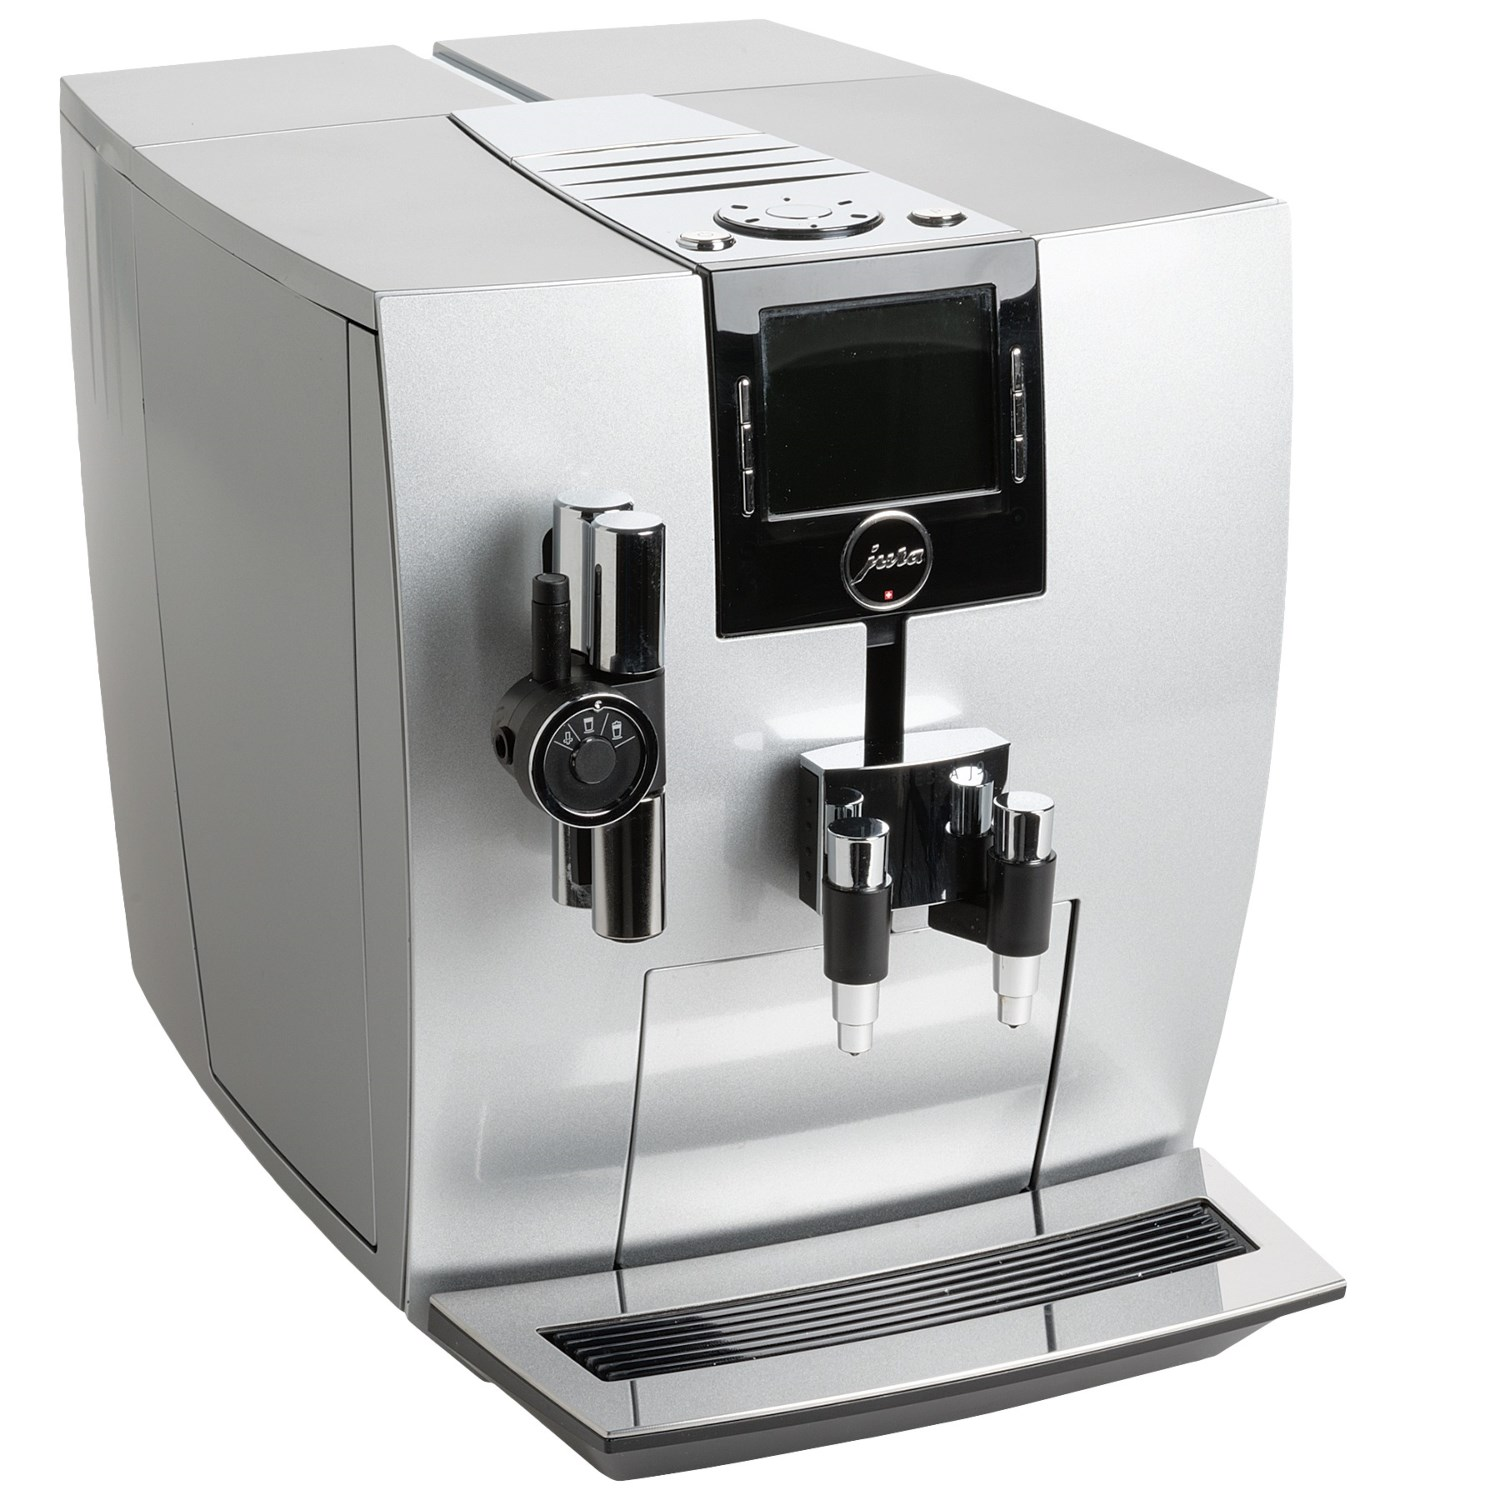 jura capresso impressa j9 tft one touch espresso coffee machine save 35. Black Bedroom Furniture Sets. Home Design Ideas